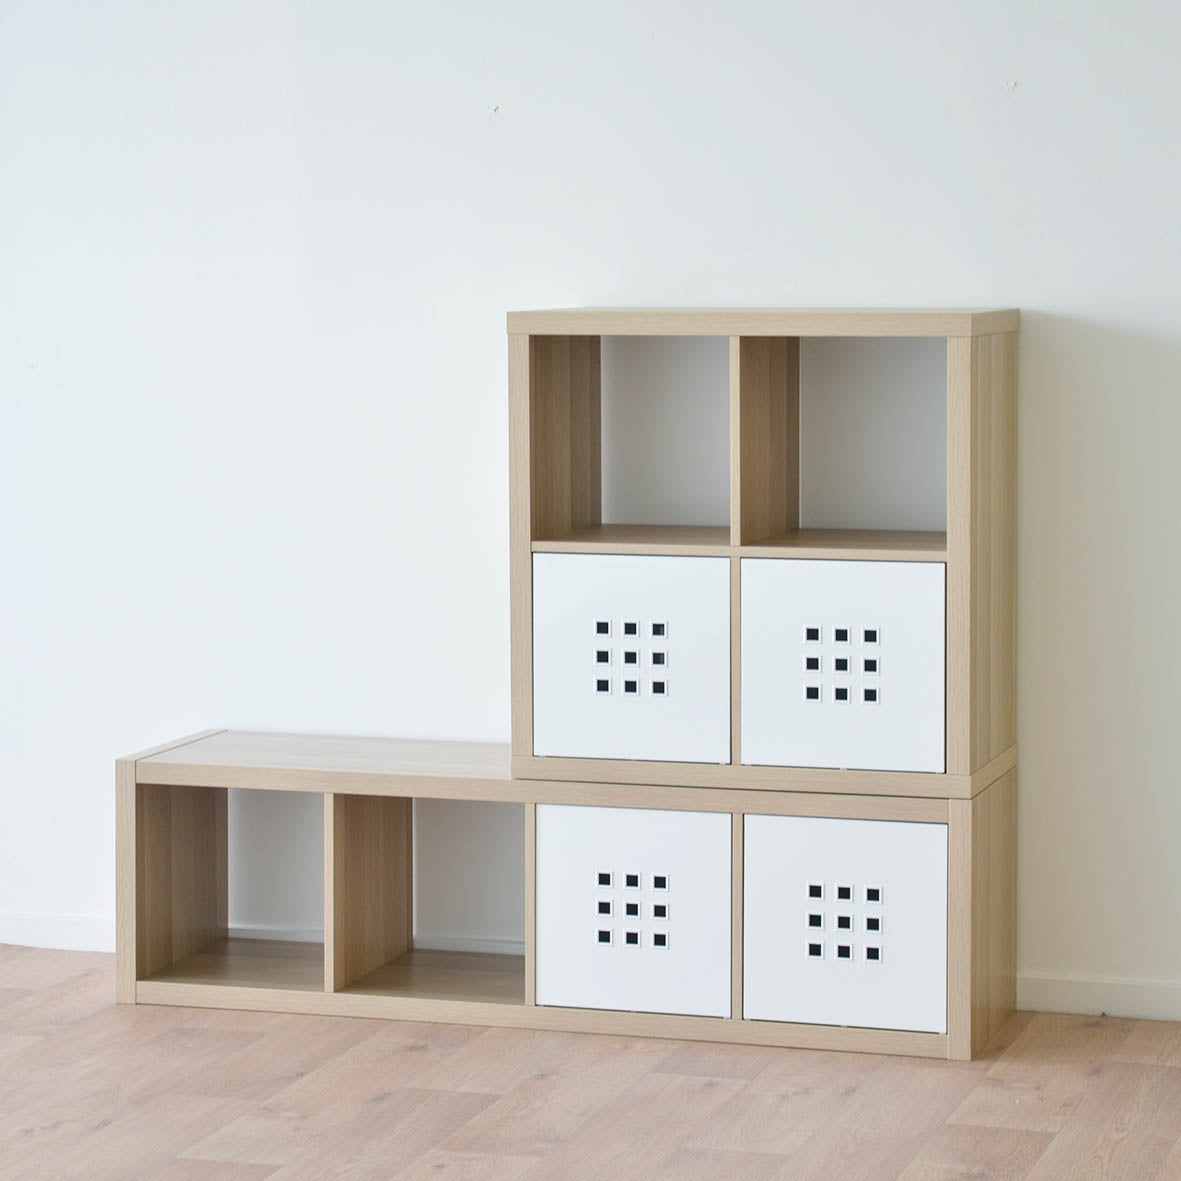 IKEA Kallax 1x4 Shelving unit, 42x147cm, White Stained Oak